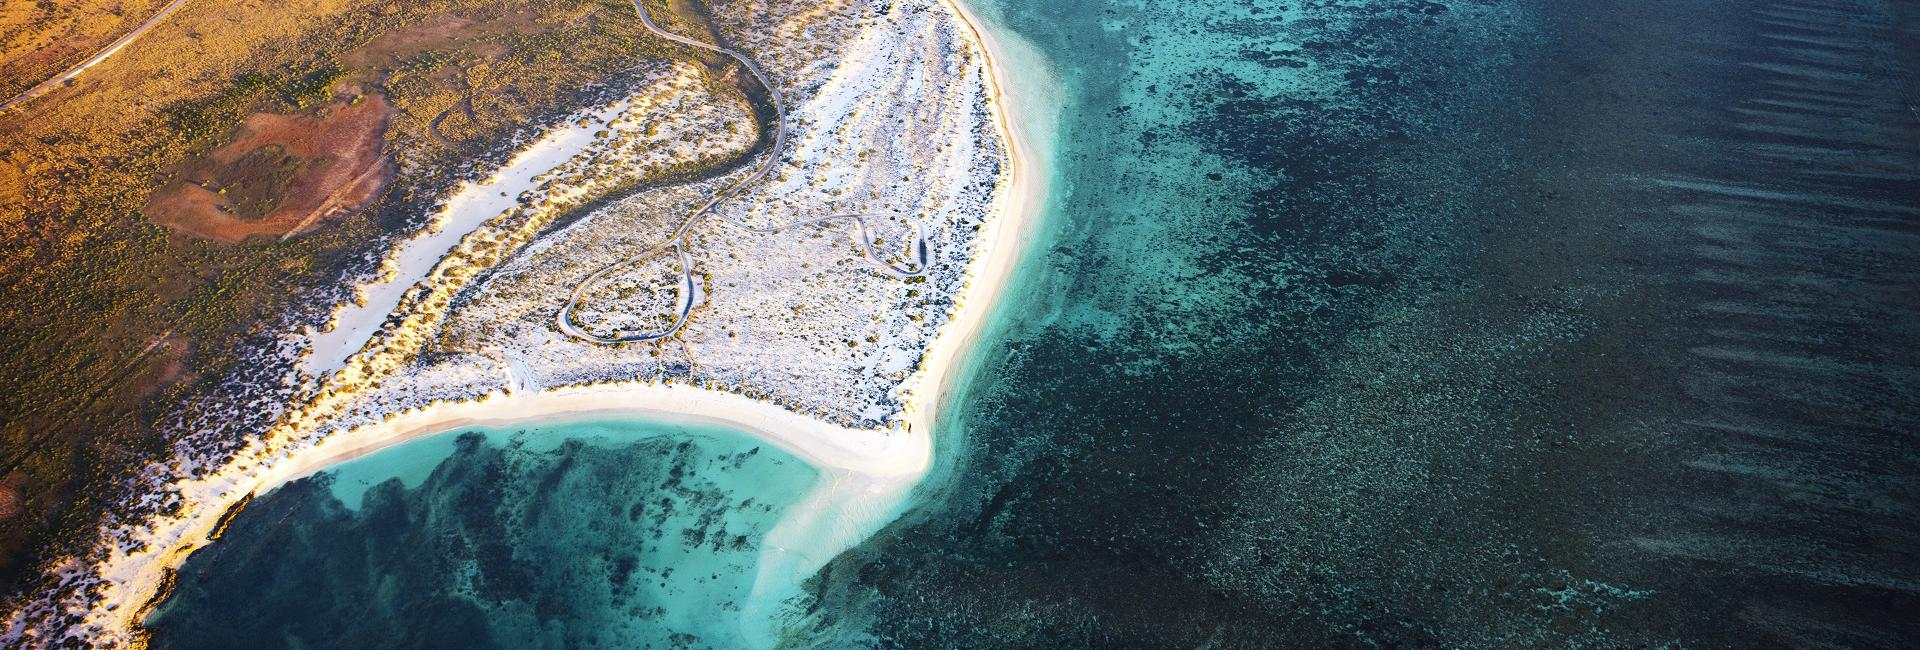 An aerial photo of Ningaloo Reef and Cape Range National Park, Western Australia. Image credit: Lauren Bath